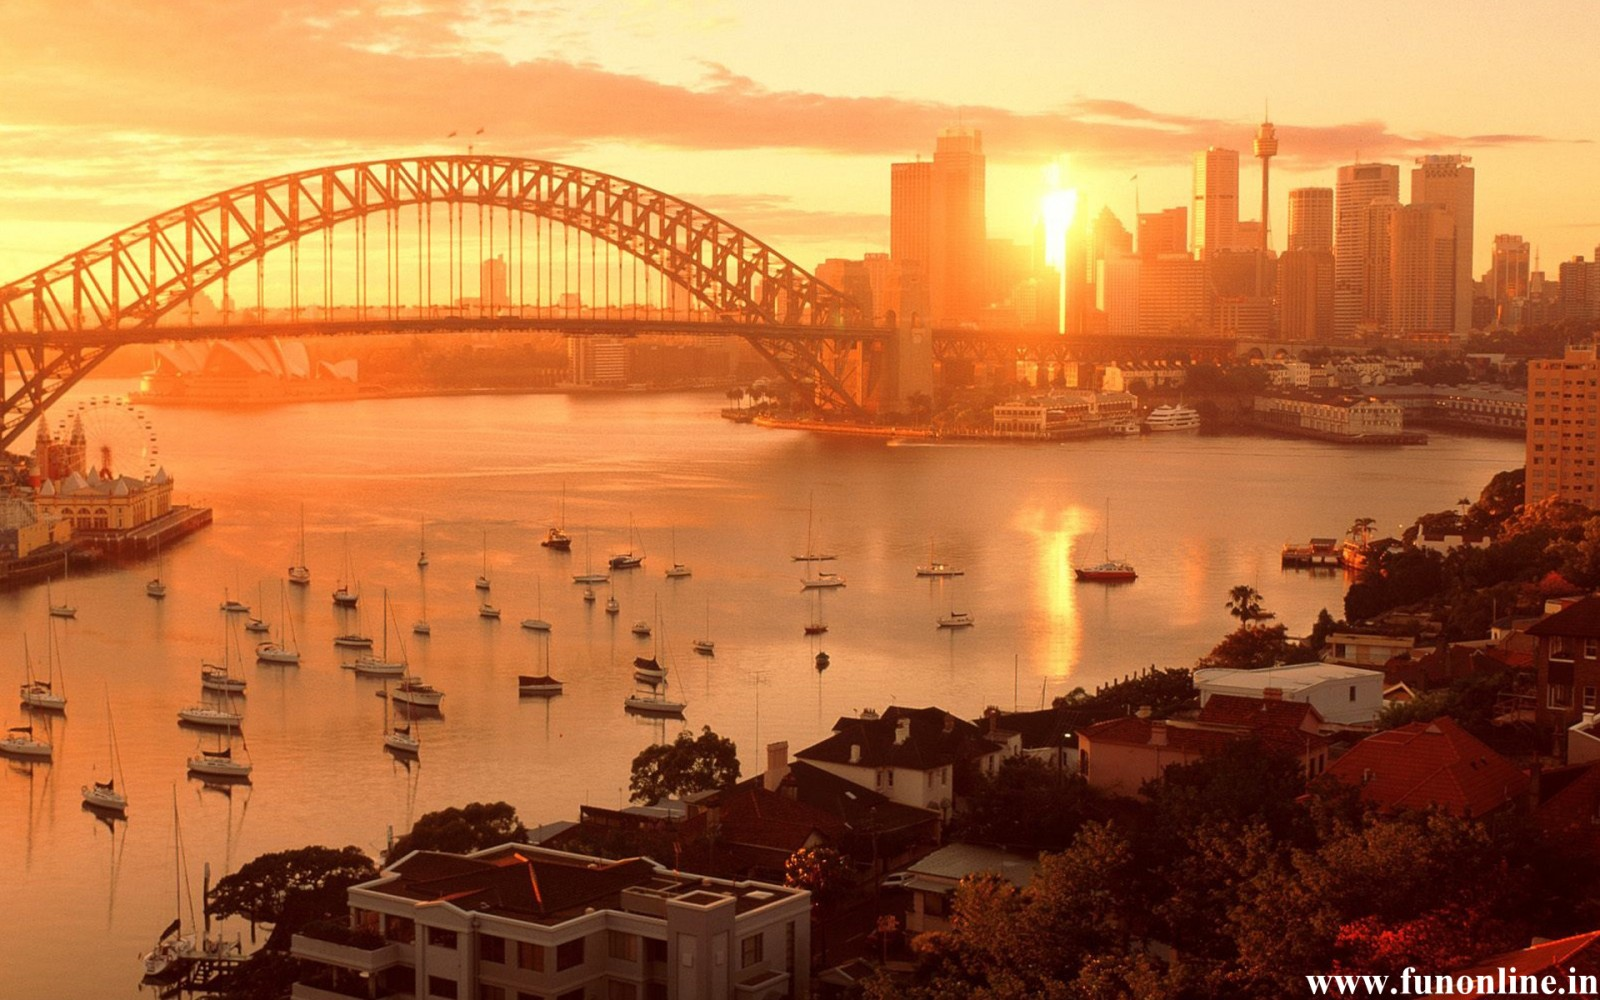 Sydney – The City of Exciting Surf Beaches